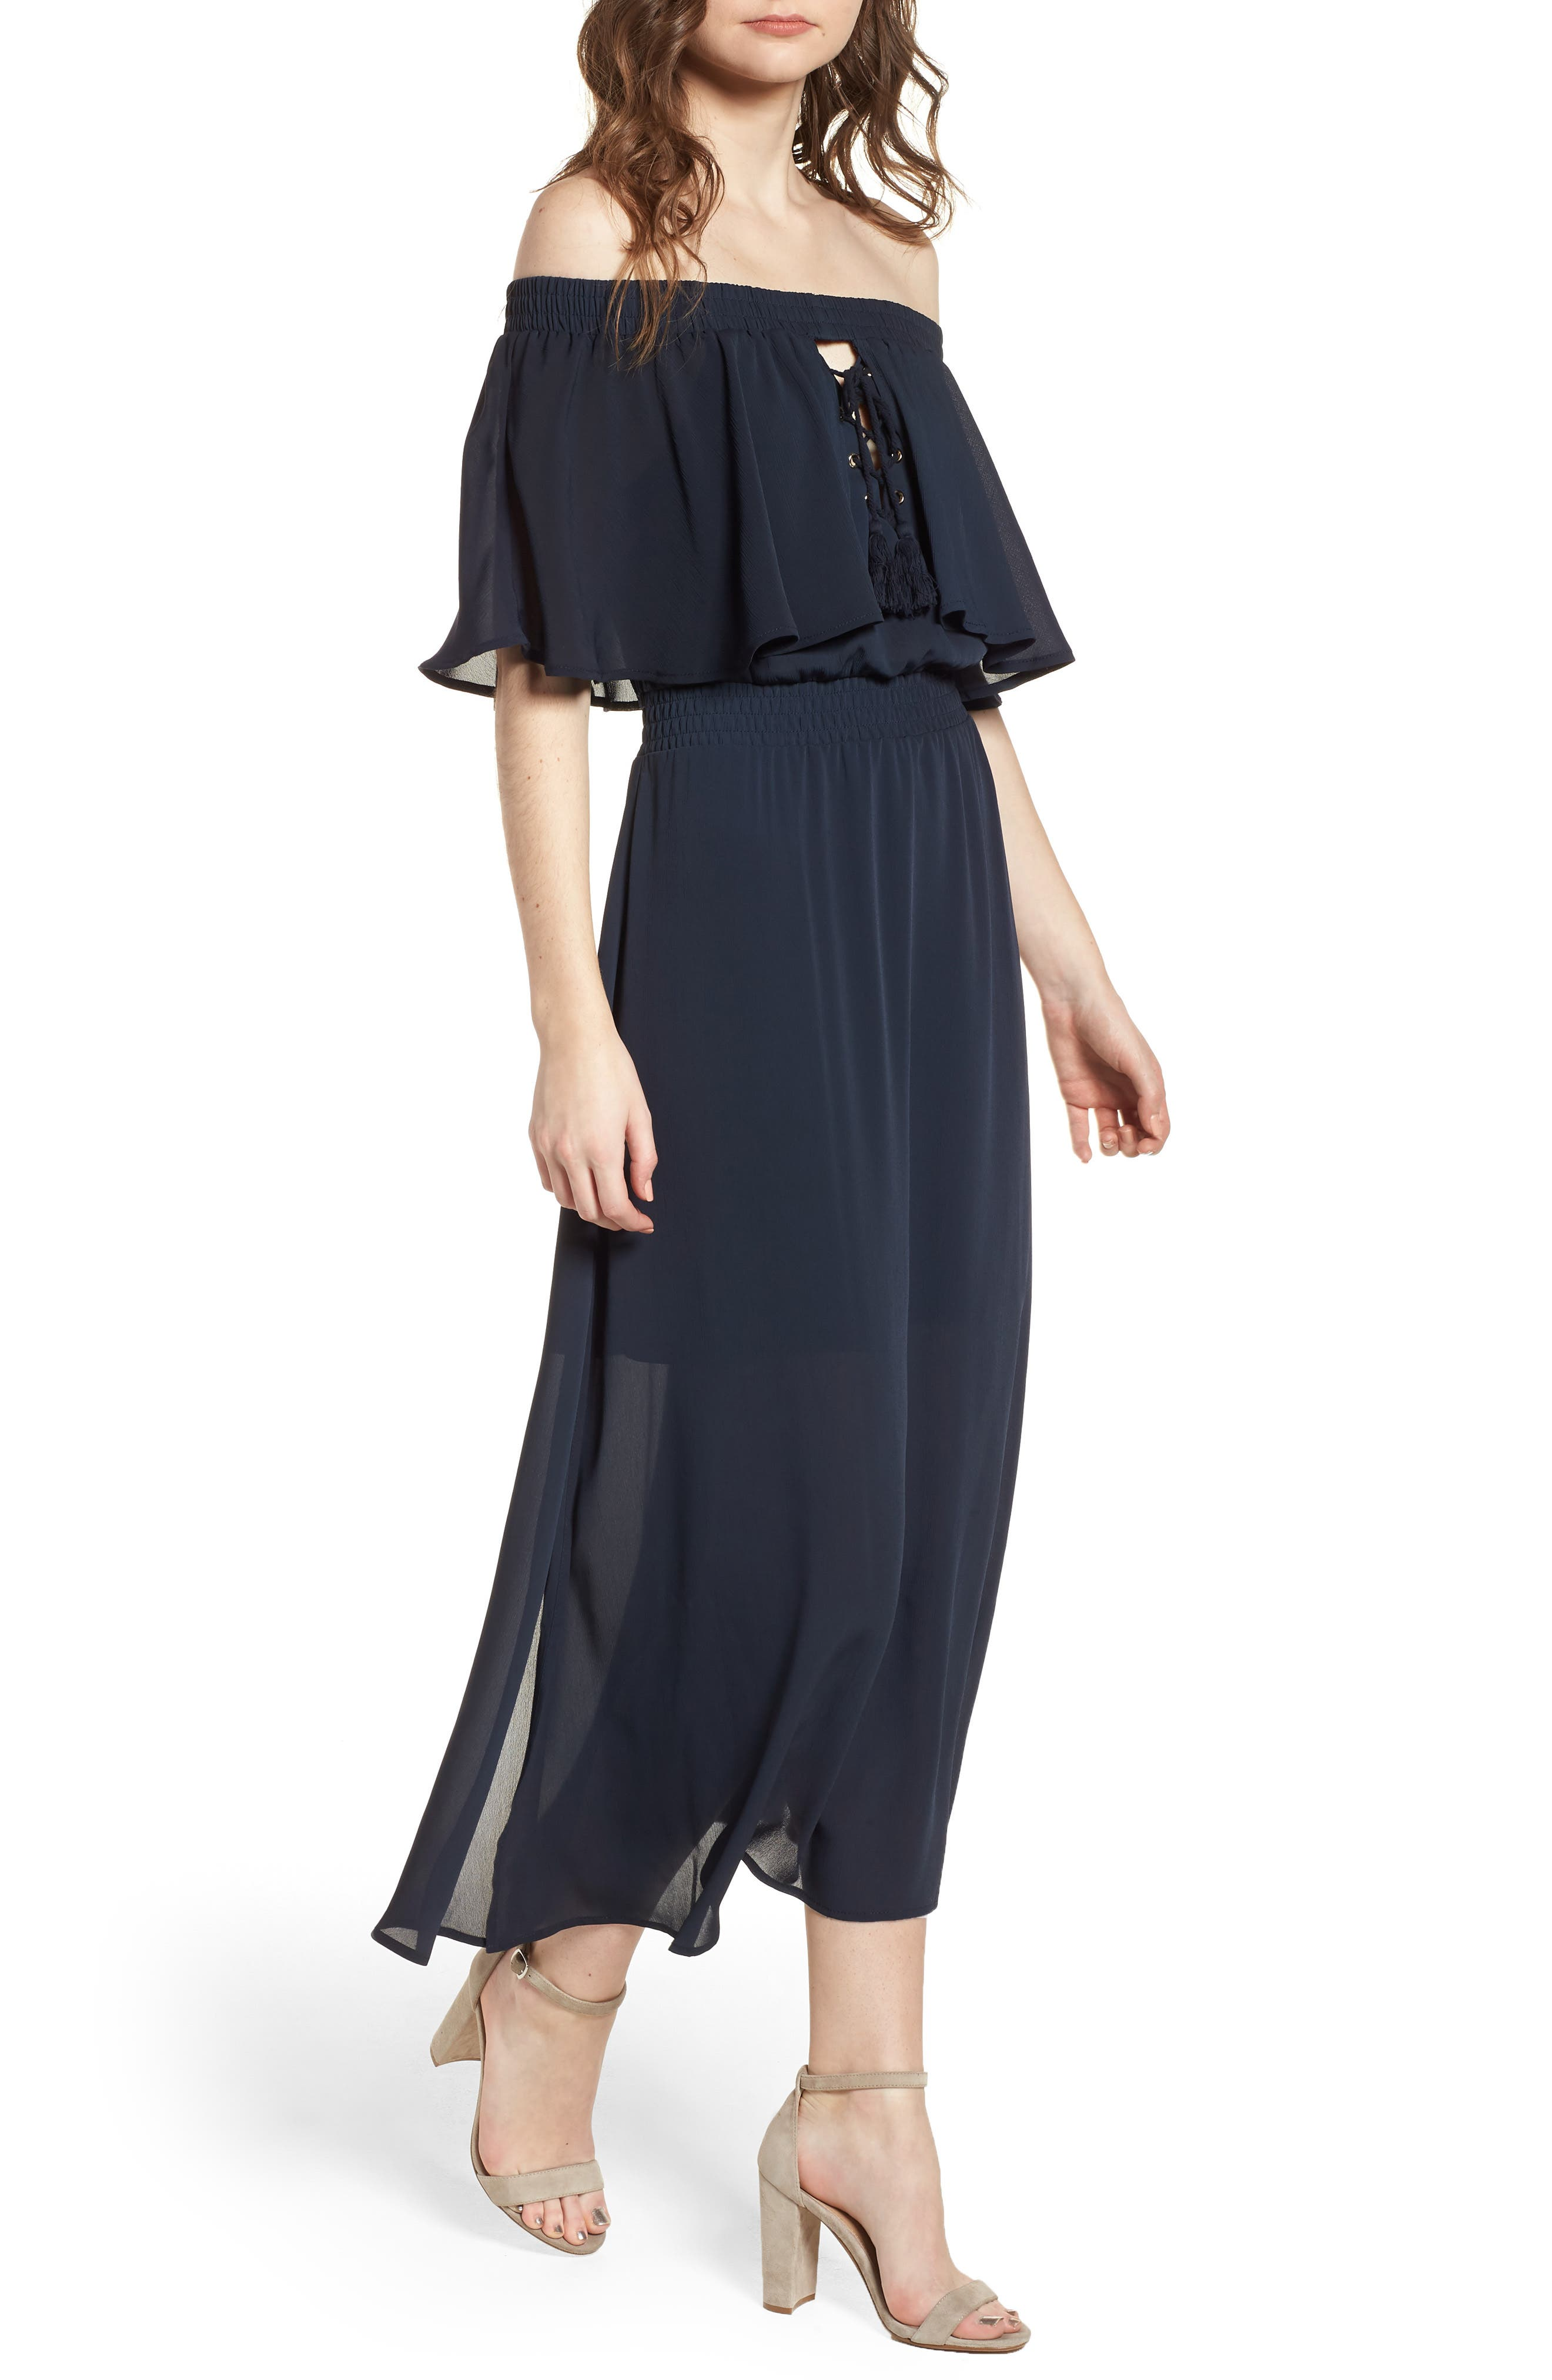 Touch the Sun Off the Shoulder Dress,                             Main thumbnail 1, color,                             410